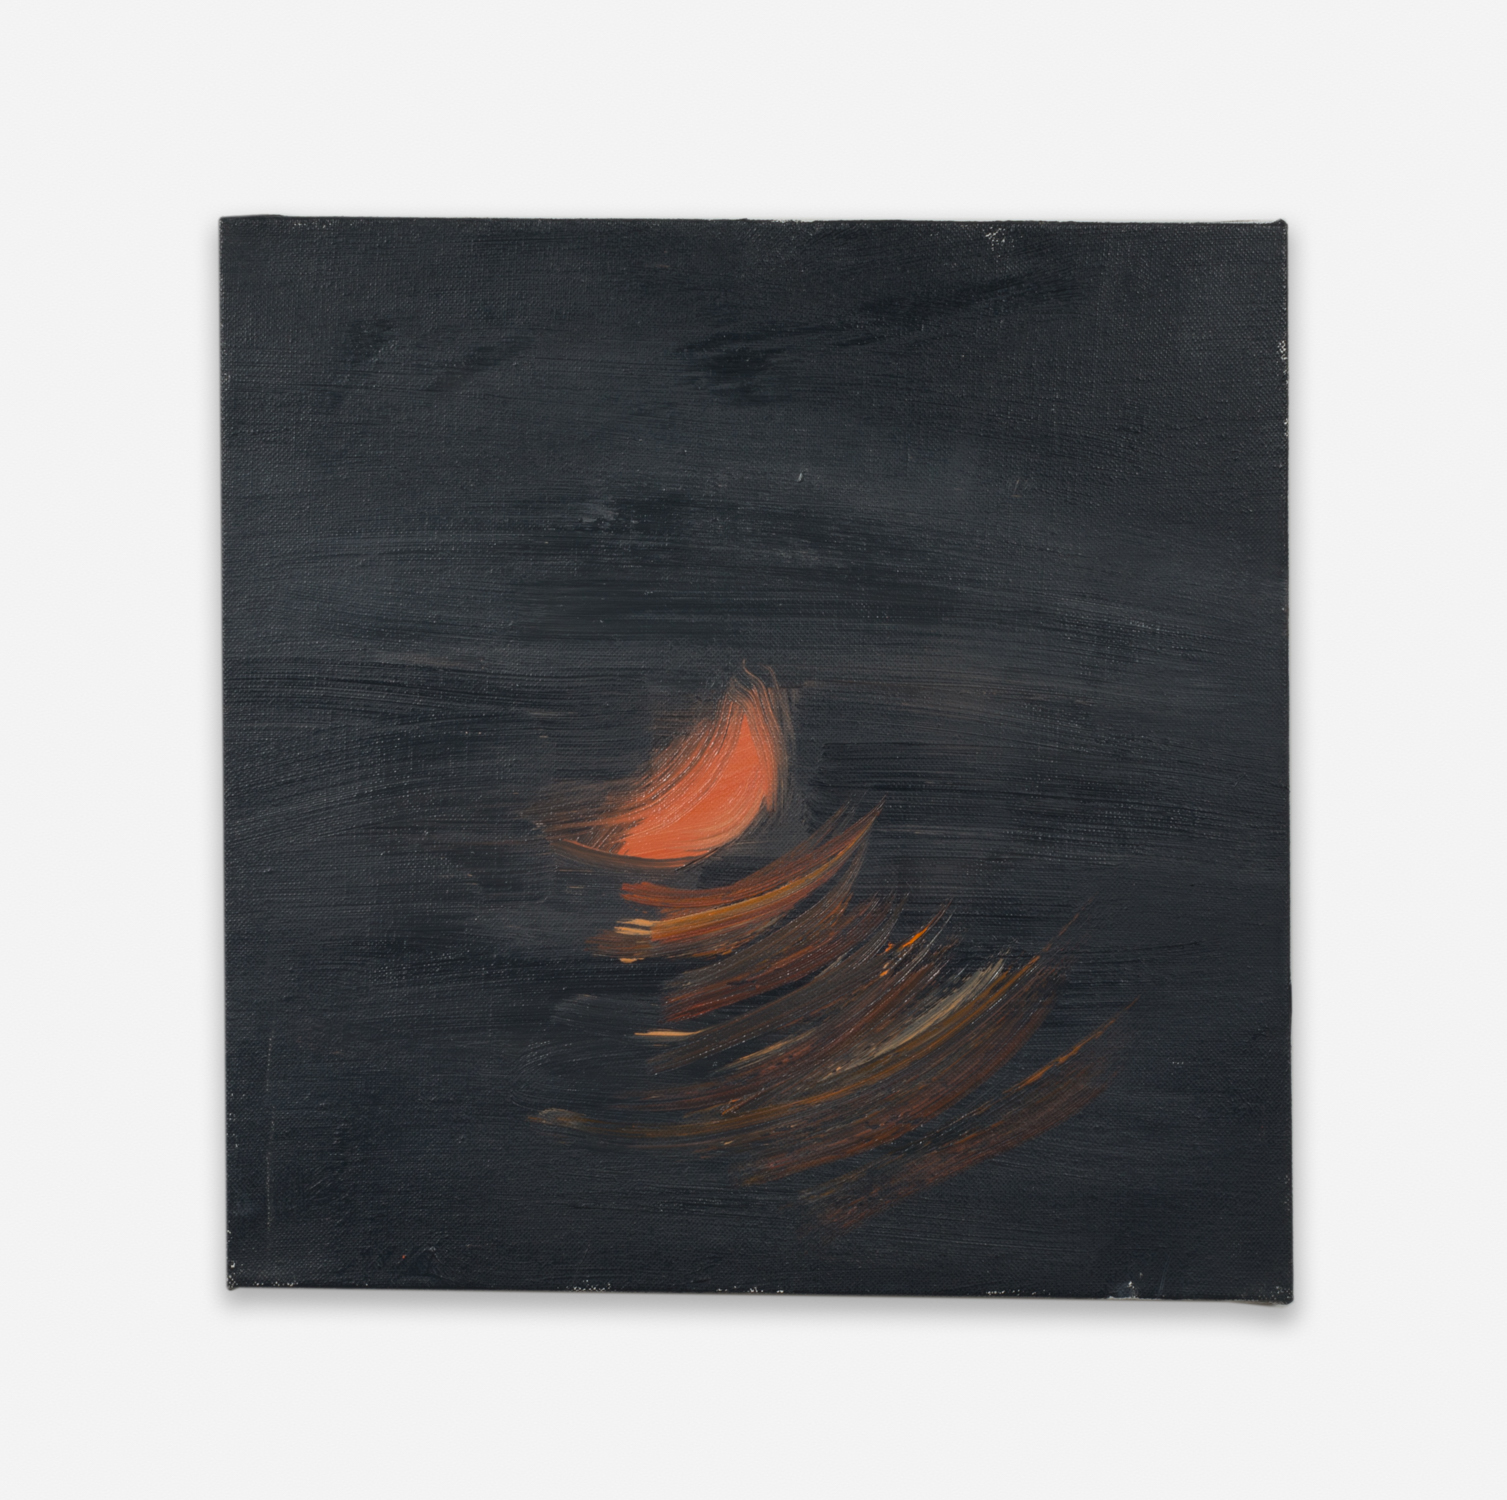 Ann Craven  Moon (Guilford, 8-26-12, 12:30AM), 2012  2012 Oil on linen 14h x 14w in AC136